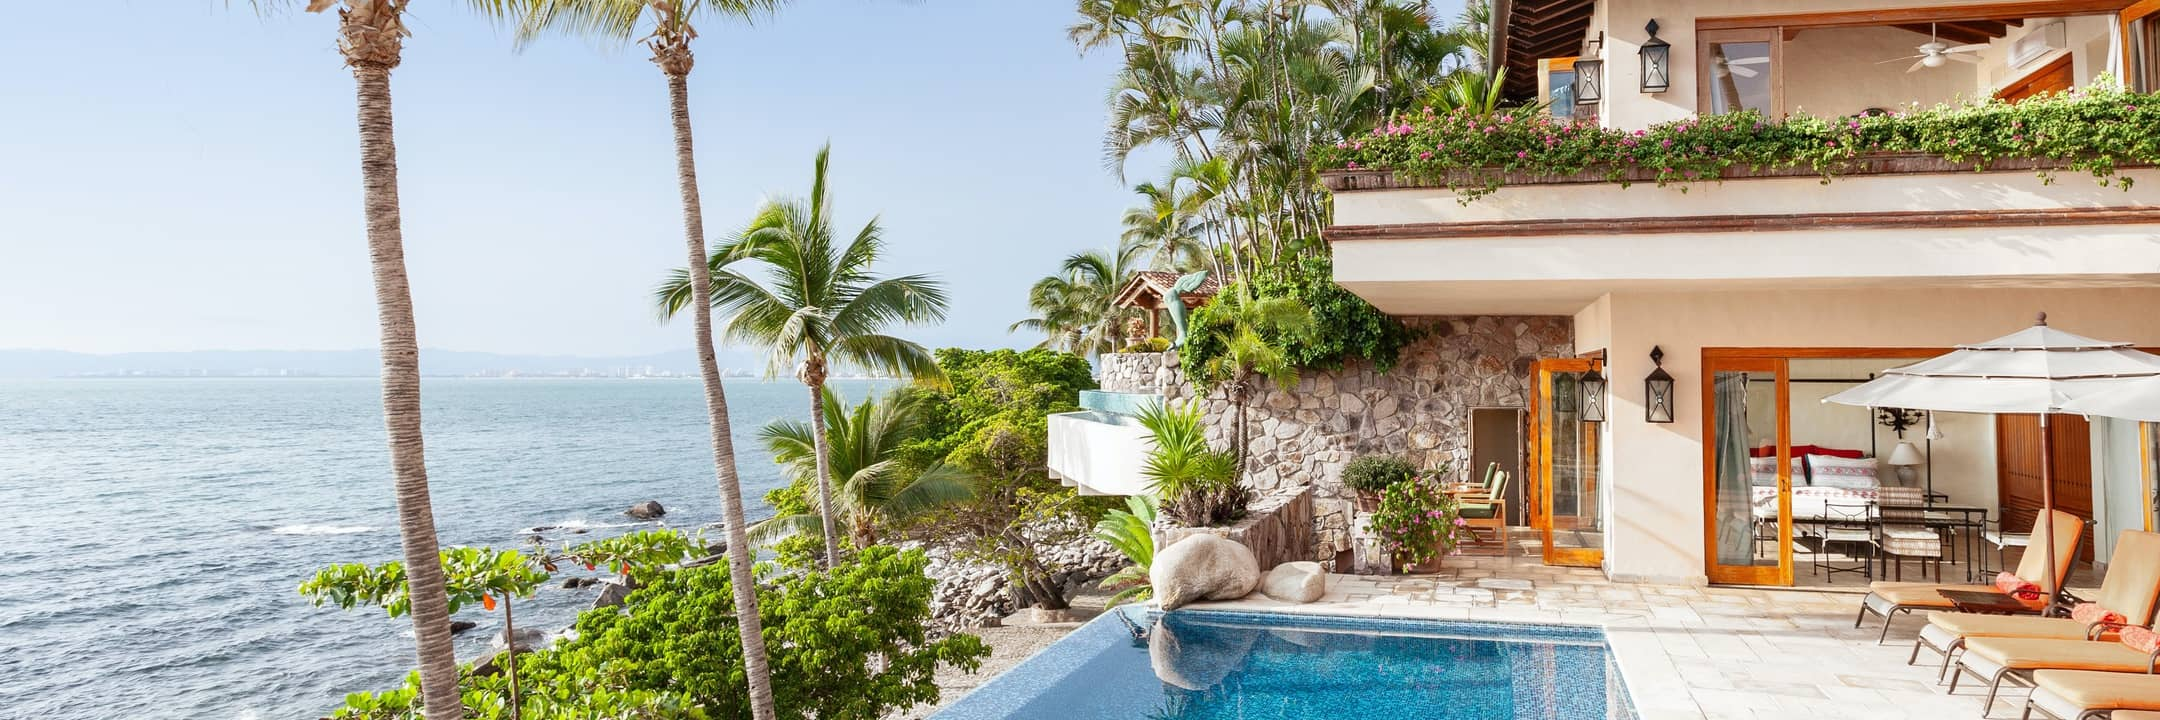 Luxury rentals in Puerto Vallarta